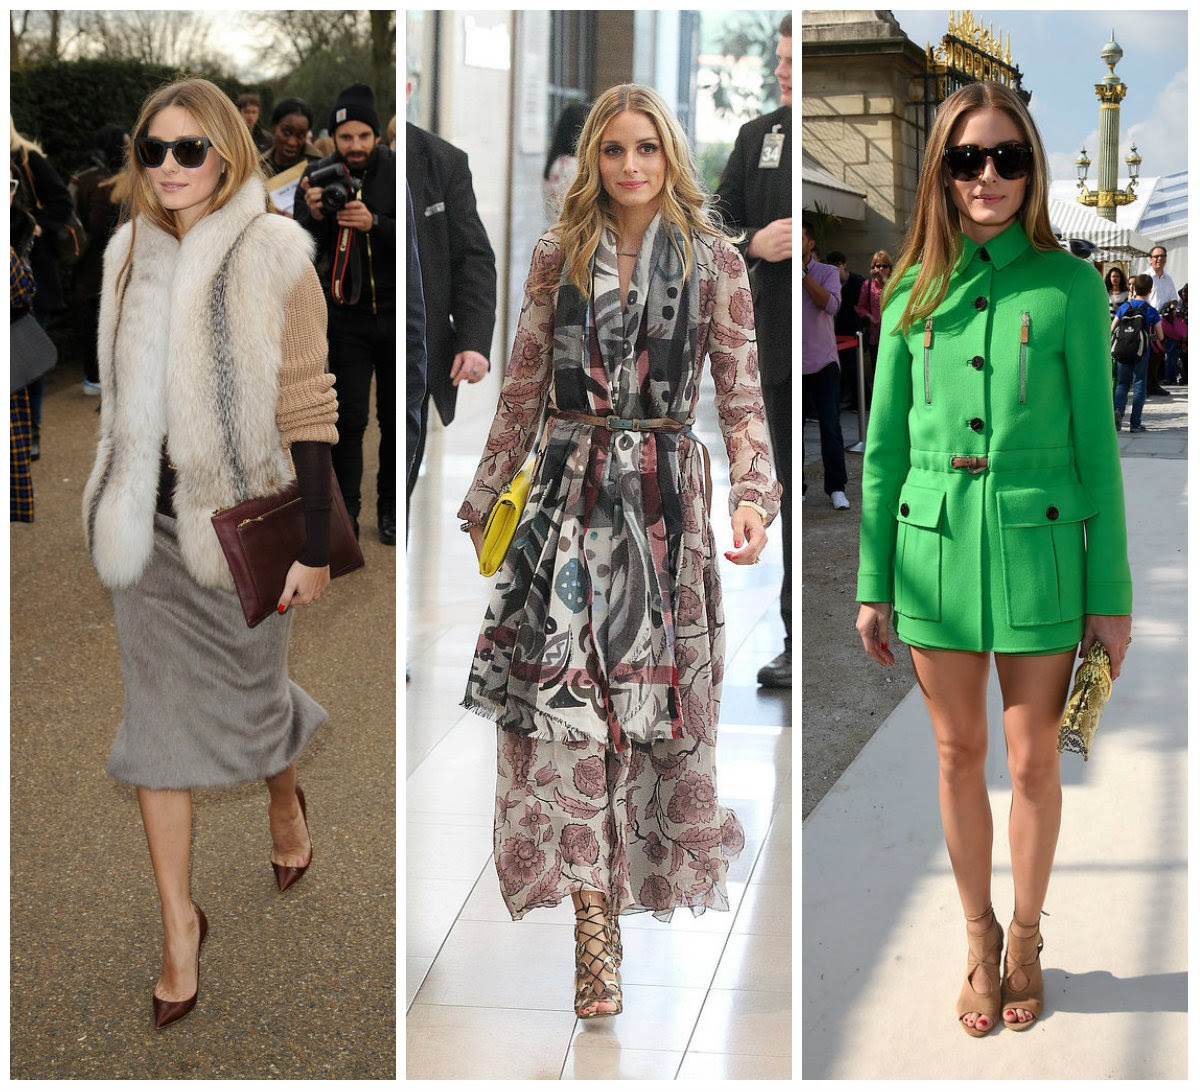 c026378ce61 The Olivia Palermo Lookbook   What would Olivia Palermo wear